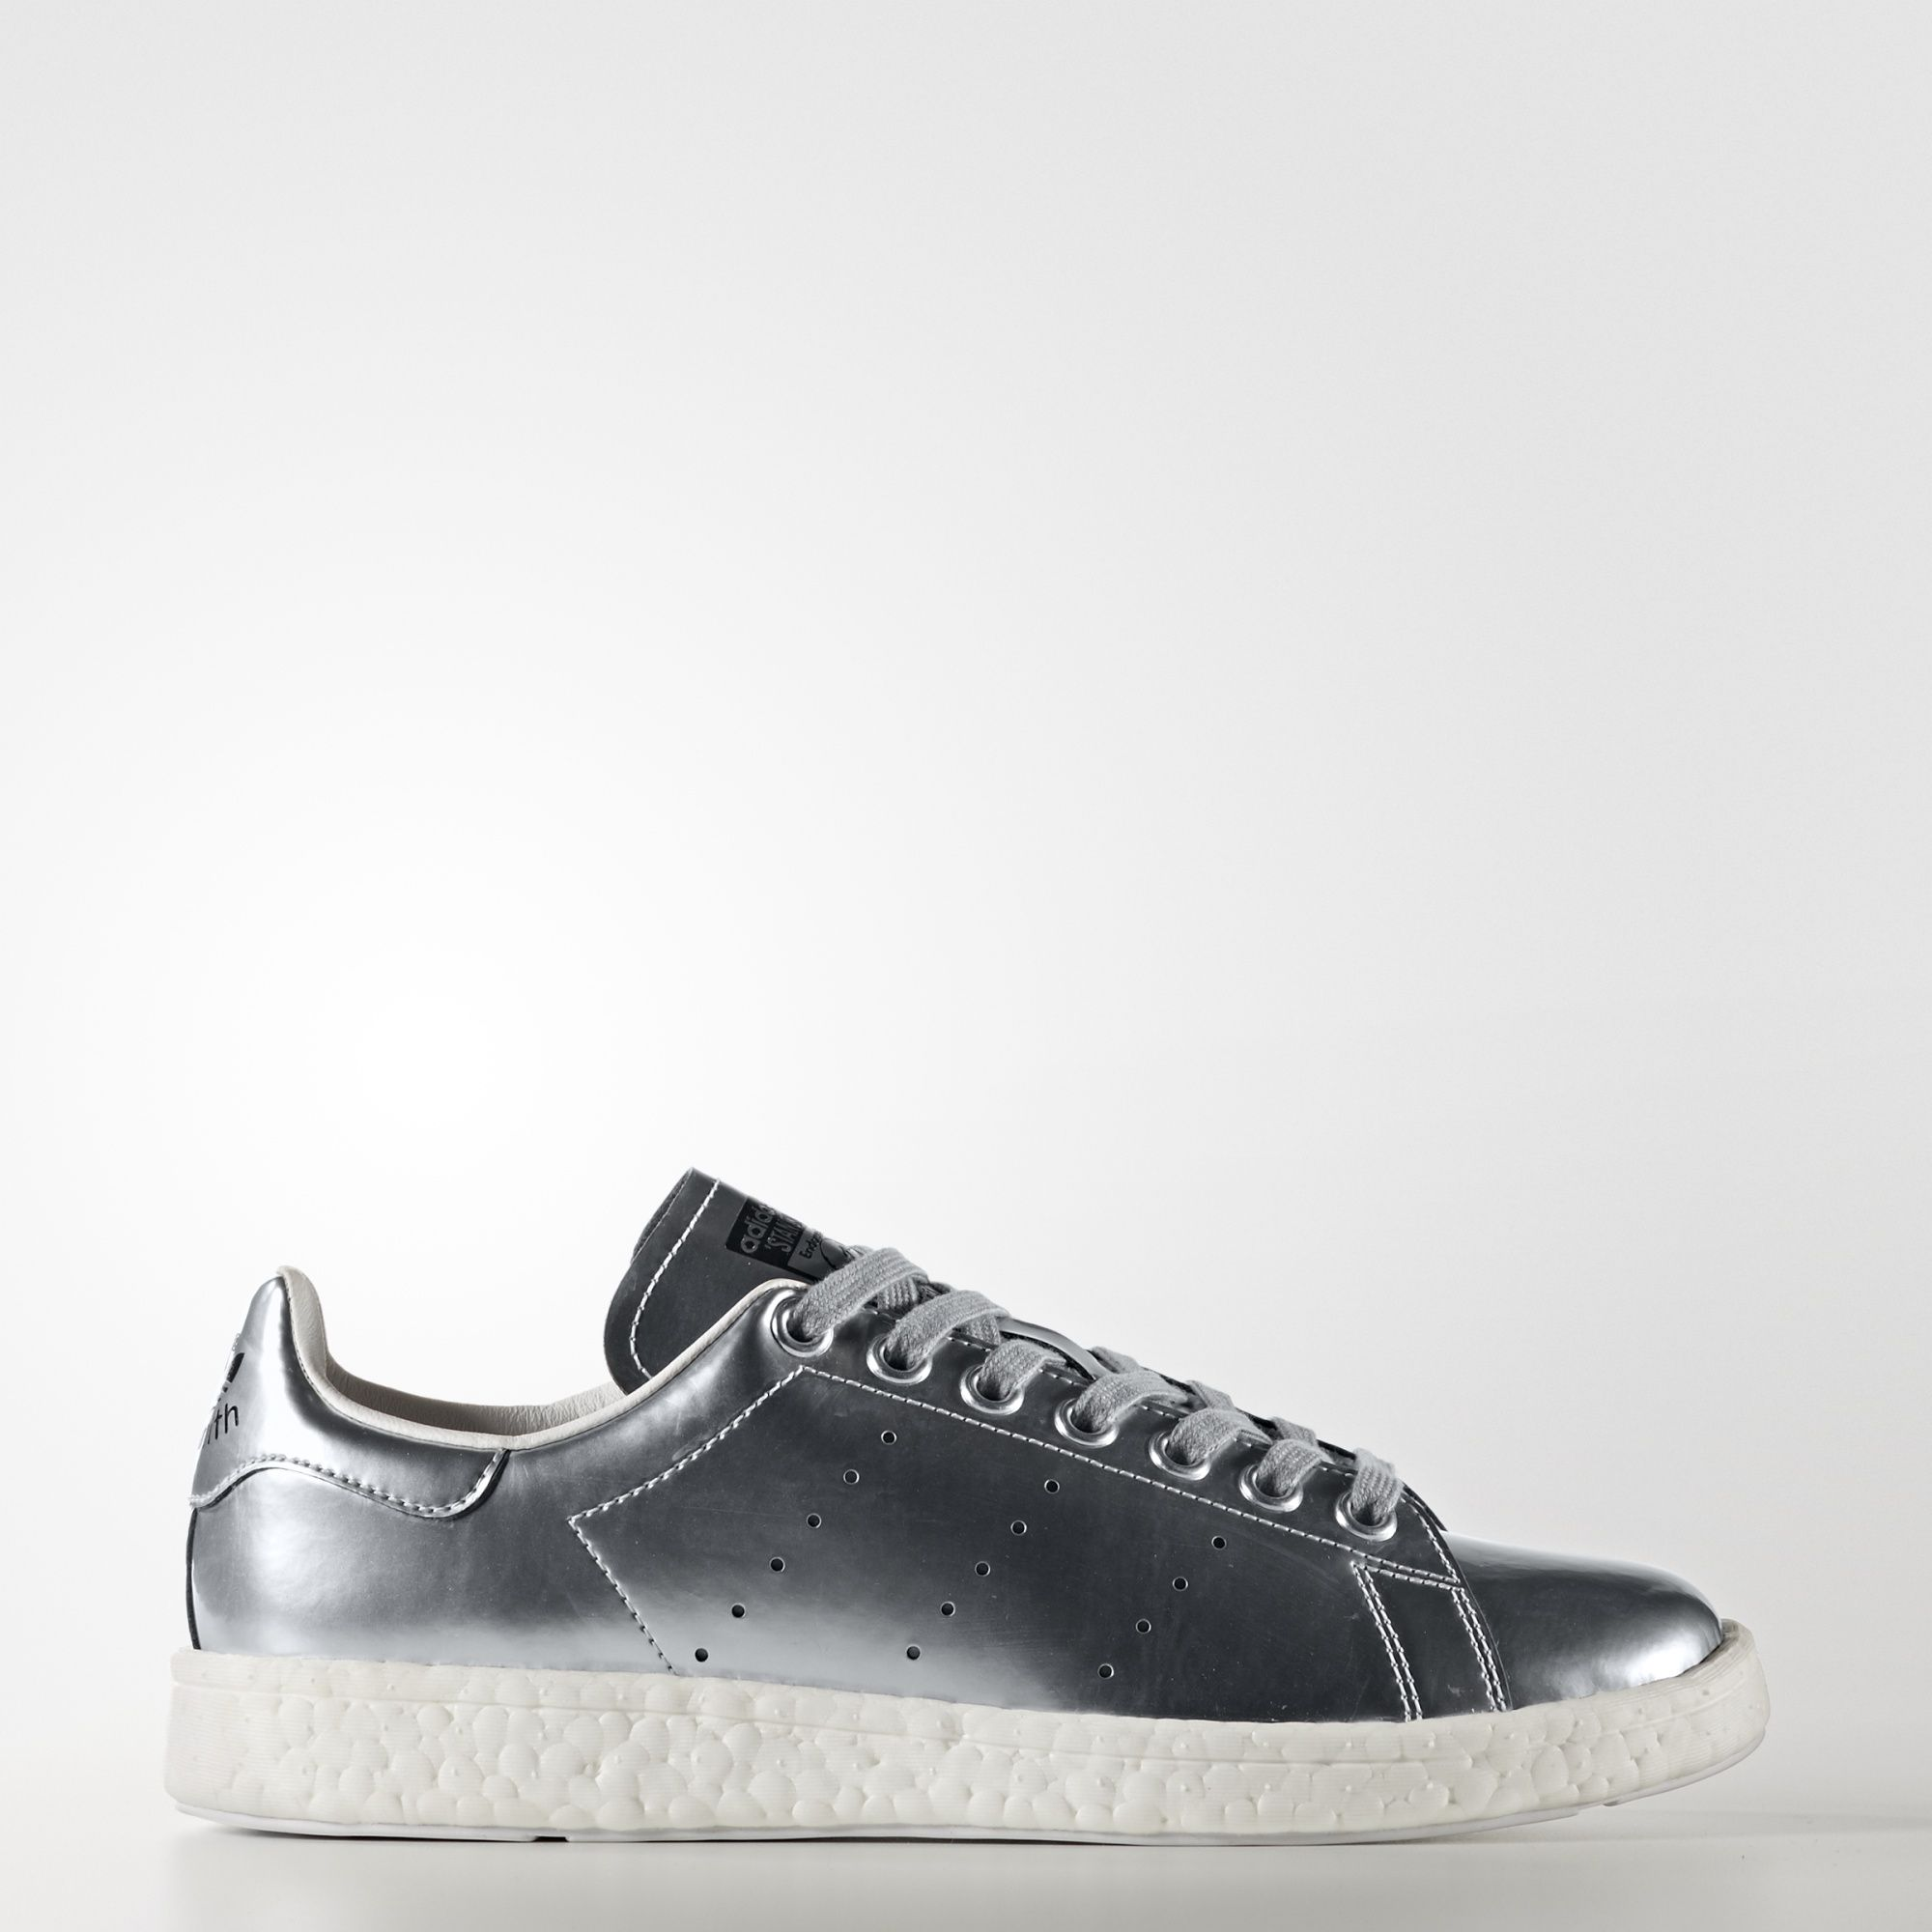 super popular 85ed2 b84a6 The first-ever leather tennis shoe, the Stan Smith quickly became a legend,  much like its namesake. Since its introduction in the  70s, the Stan Smith  has ...